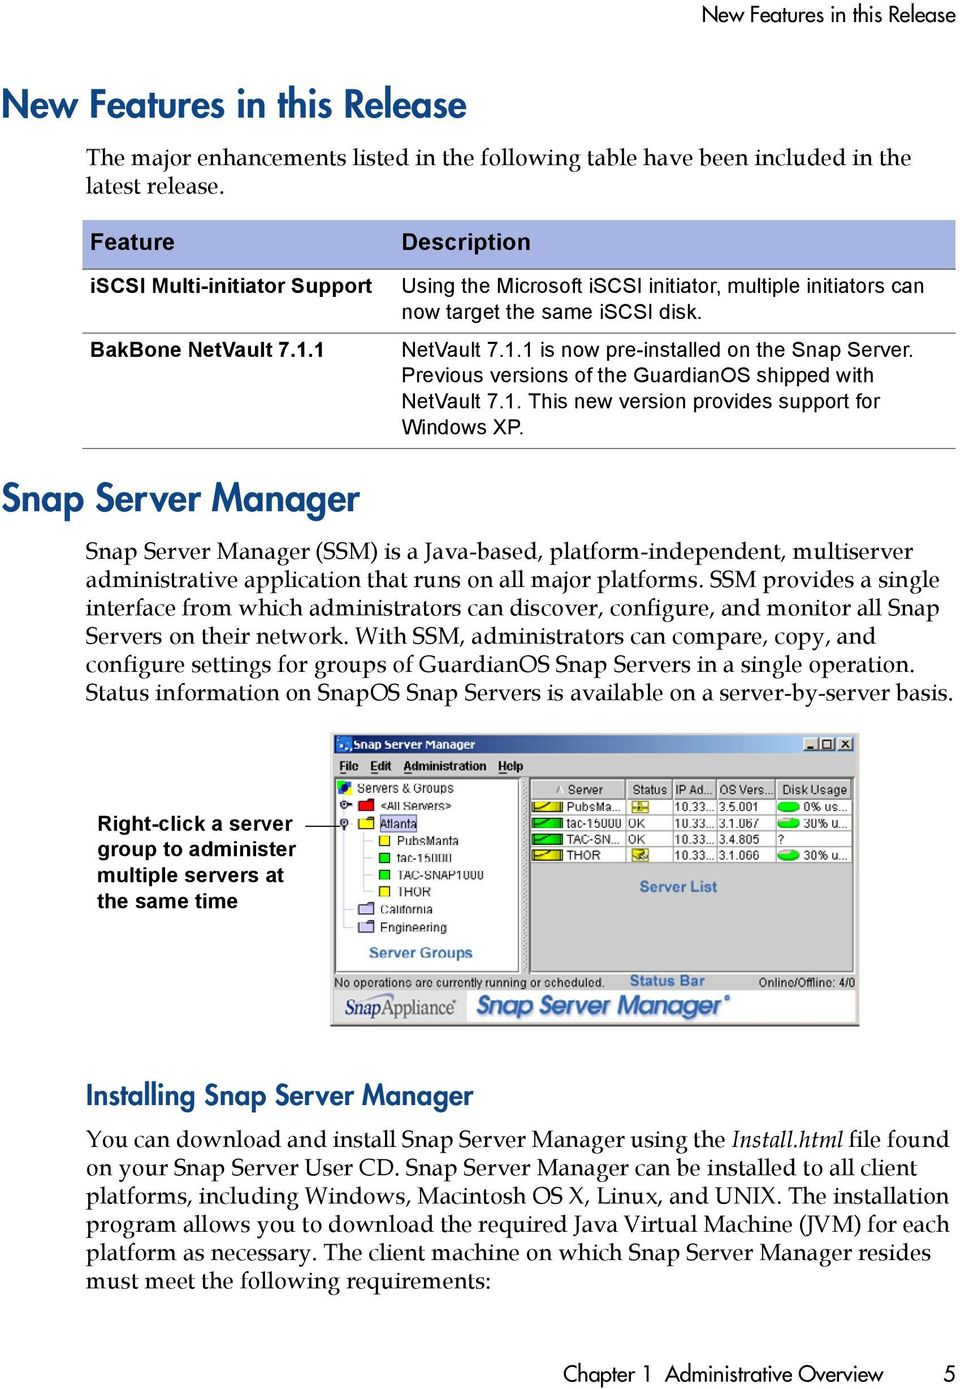 Remote server administration tools (rsat) for windows client and.